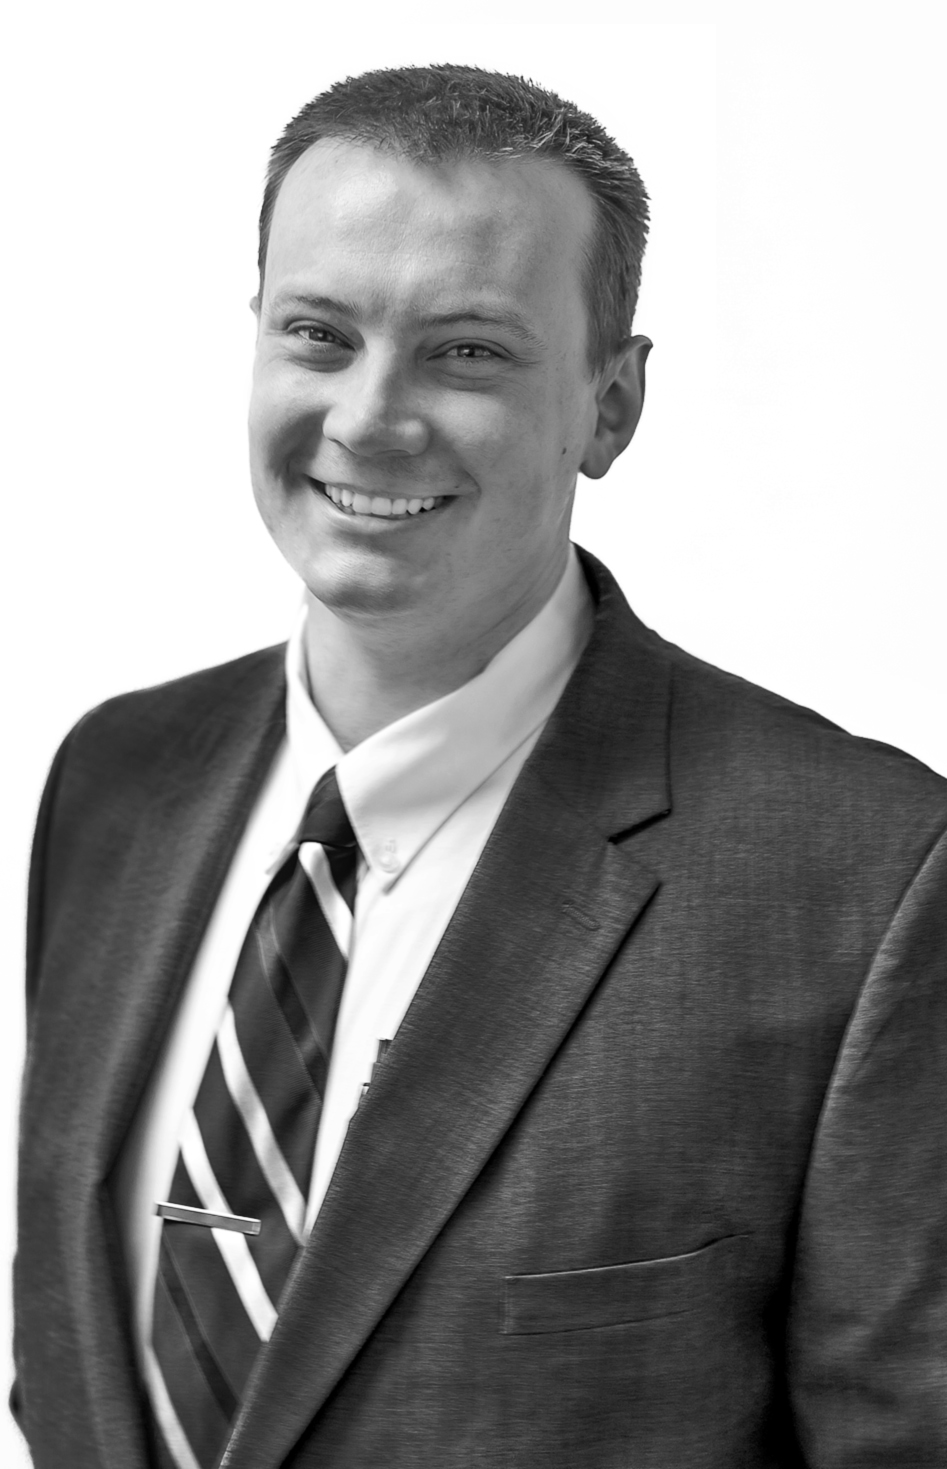 Catalin Clarke - Catalin Clarke, CPA has joined The Doty Group as Senior Accountant. A 2015 graduate from The University of Washington - Tacoma, Catalin is originally from the Olympia area, and now calls Tacoma home. He has 3 years of Accounting experience with a focus in taxation, and has the most experience working with restaurants, professional services, and small/ closely held businesses. He is a former board member of My Sister's Pantry, and currently volunteers with Rebuilding Together.